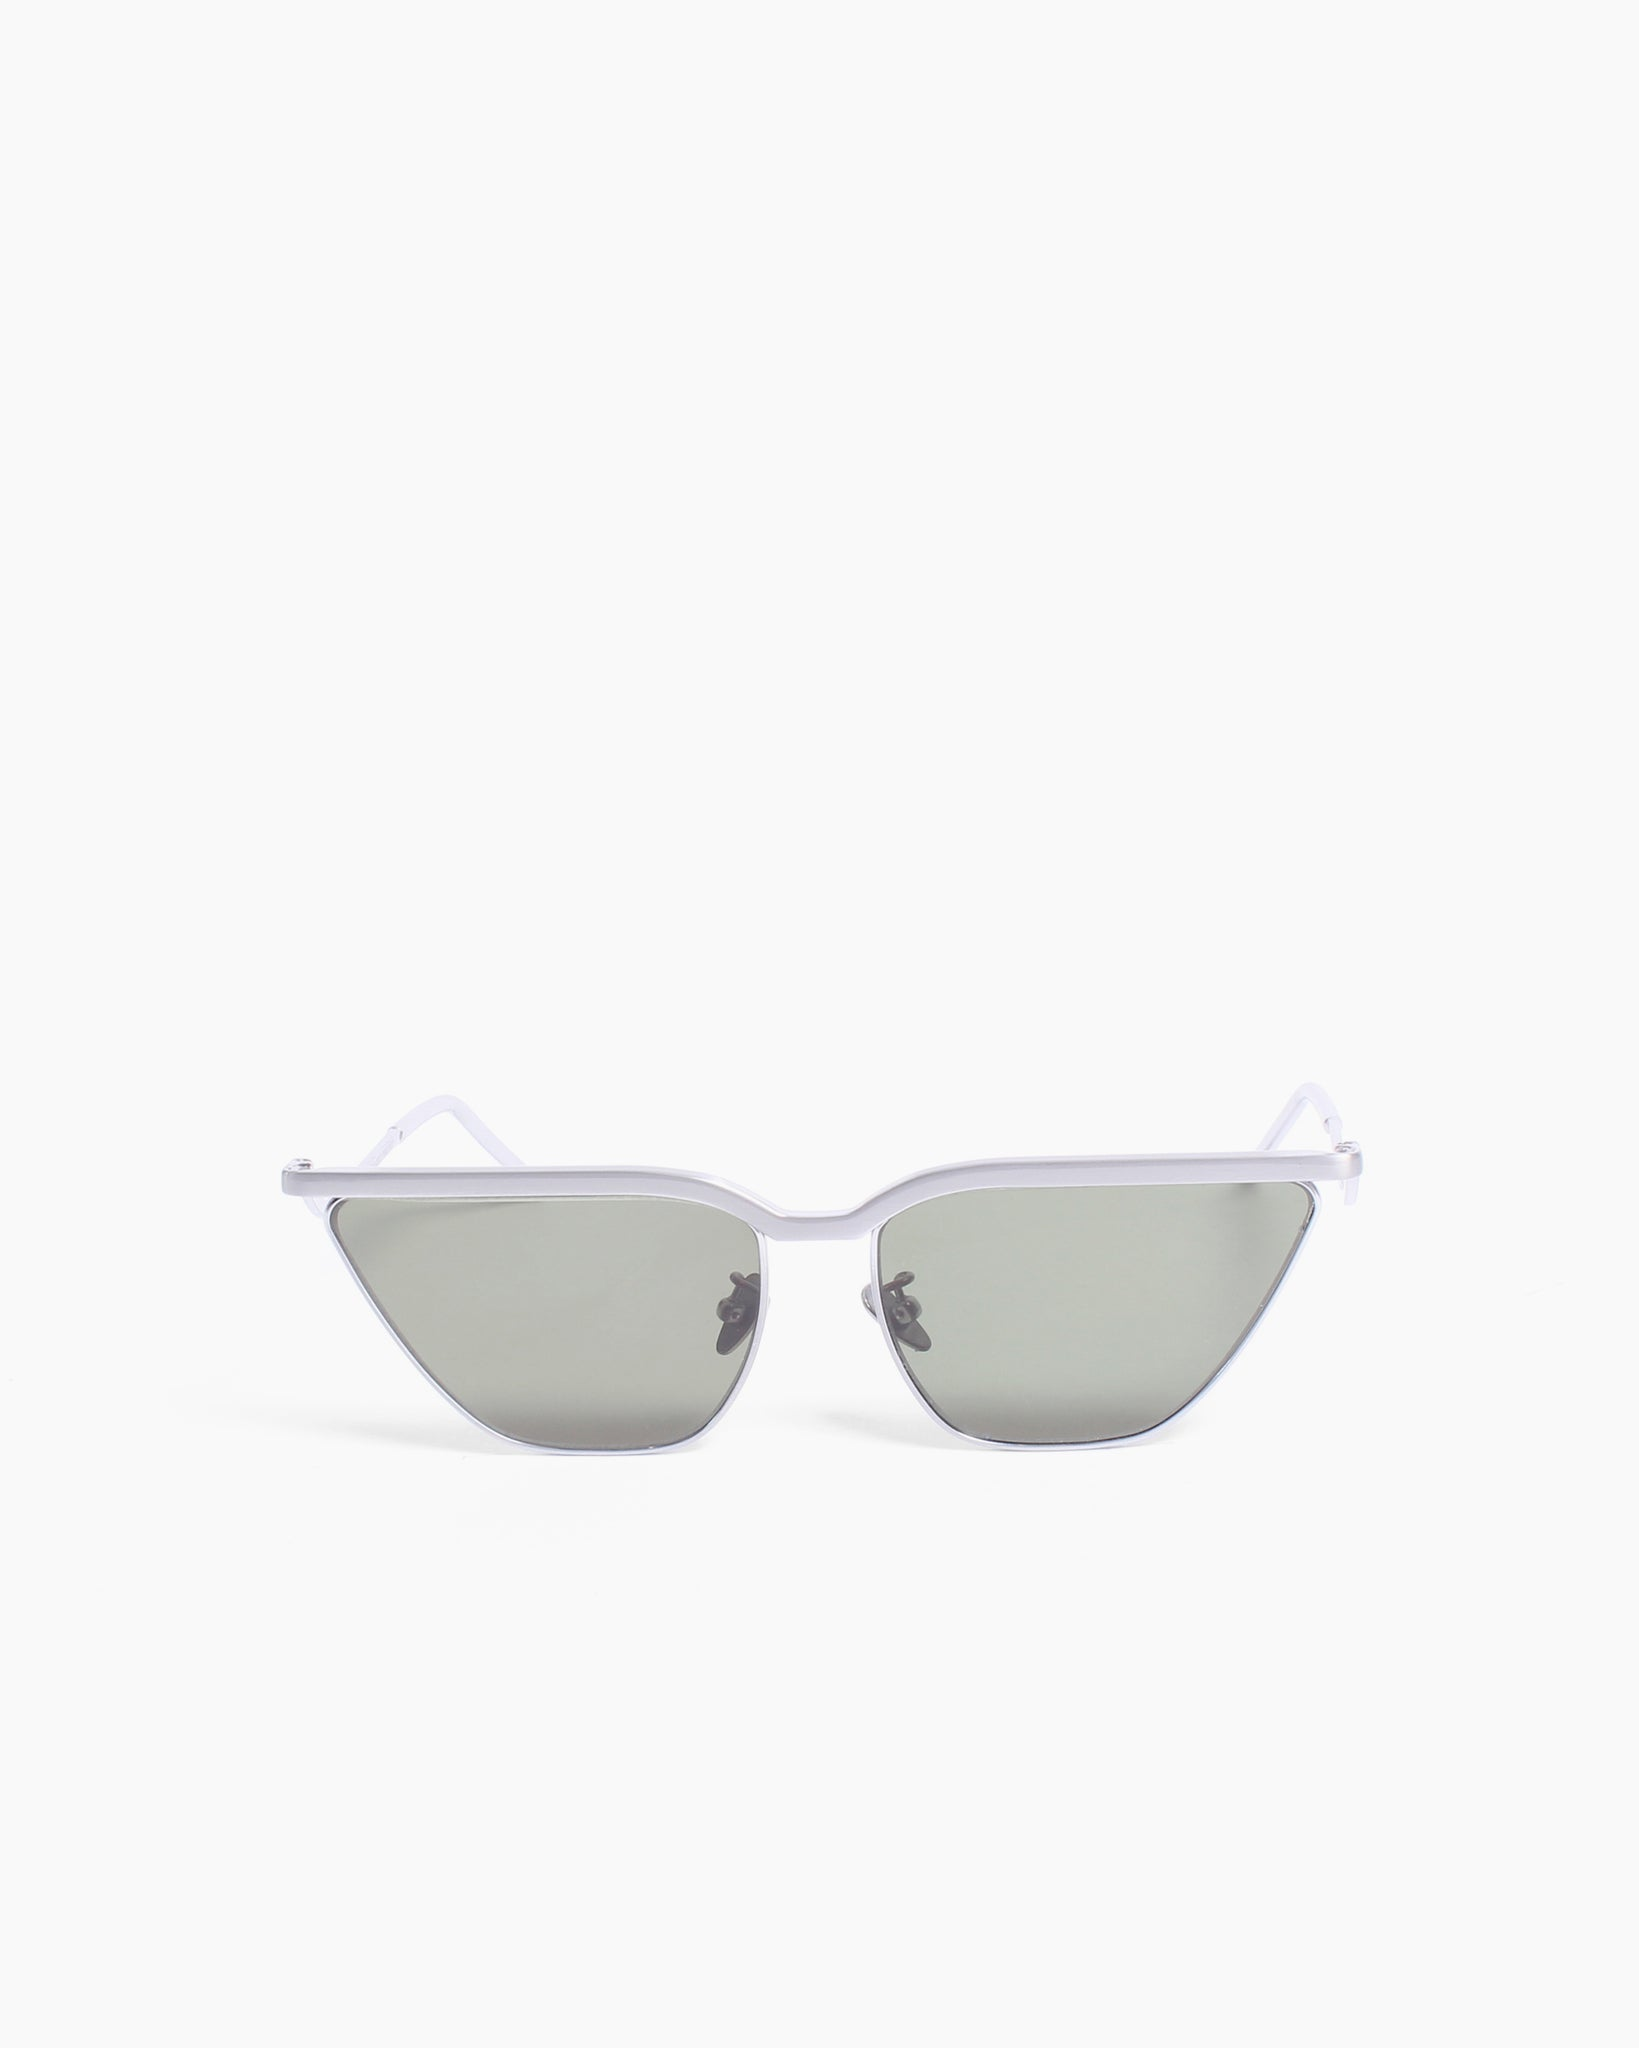 Kira Sunglasses White Gold